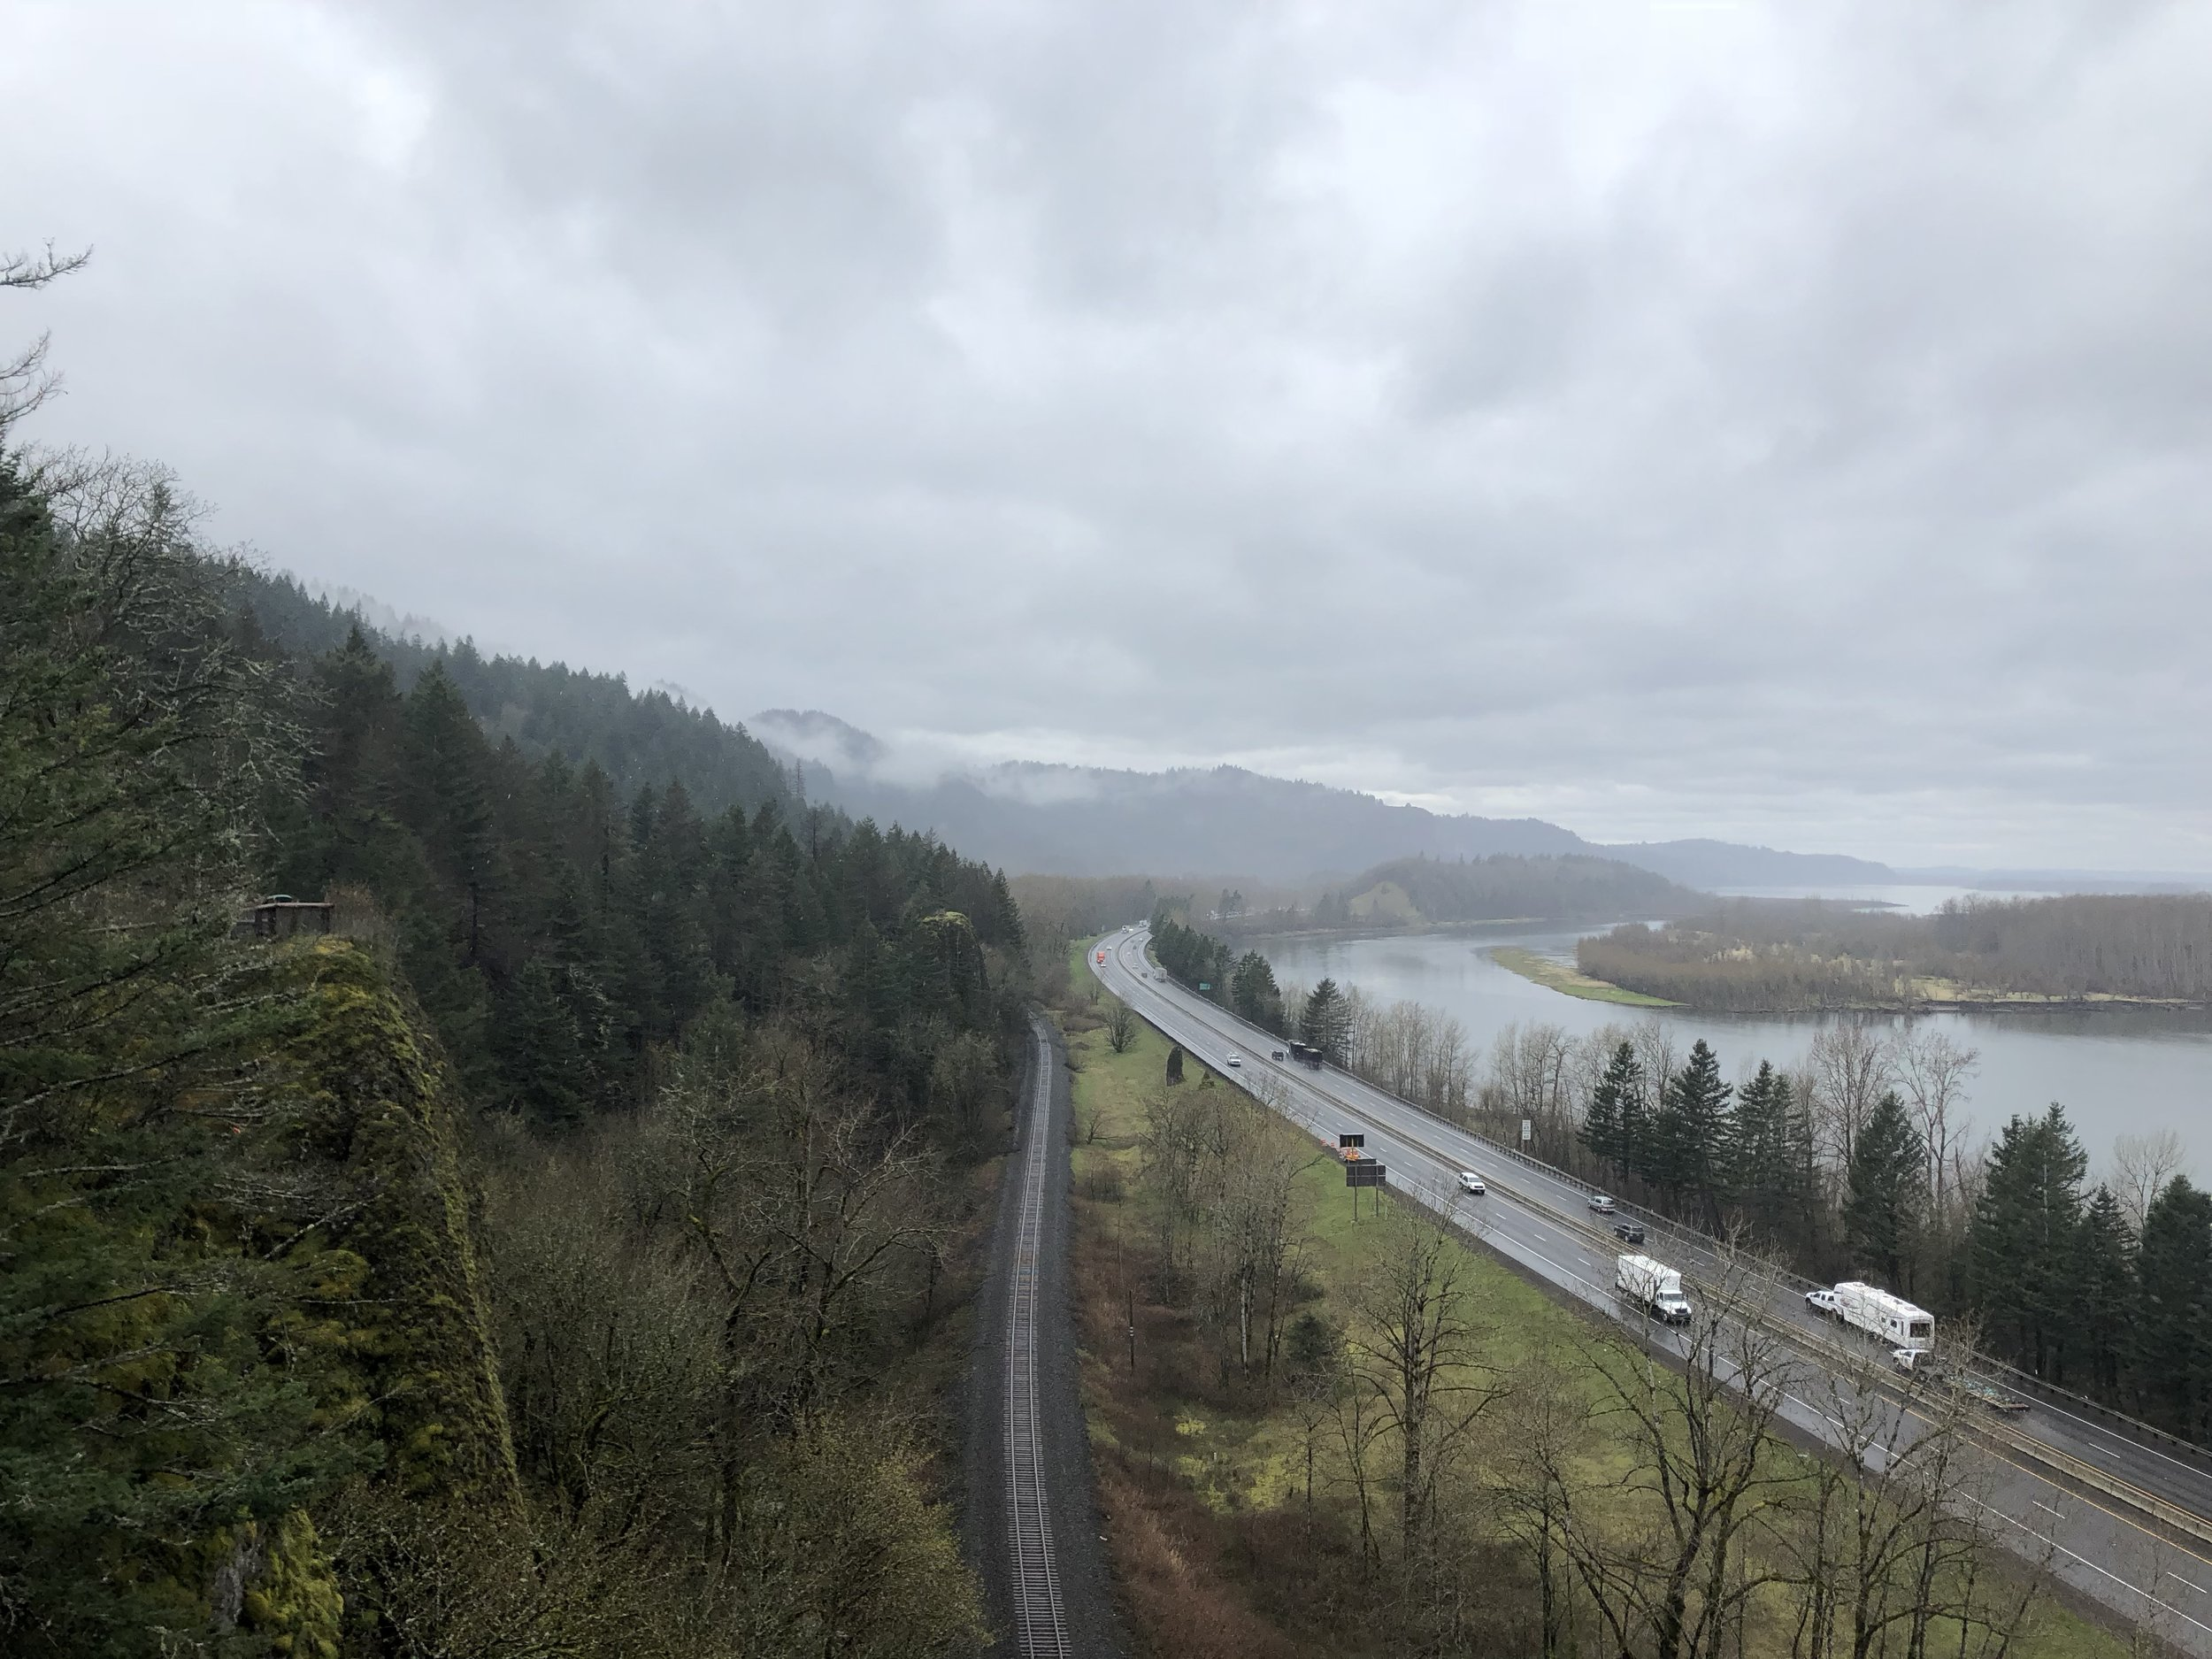 This is the view from a short hike at the Bridal Veil Falls' parking lot. It is the Columbia river that divides Oregon from Washington State.